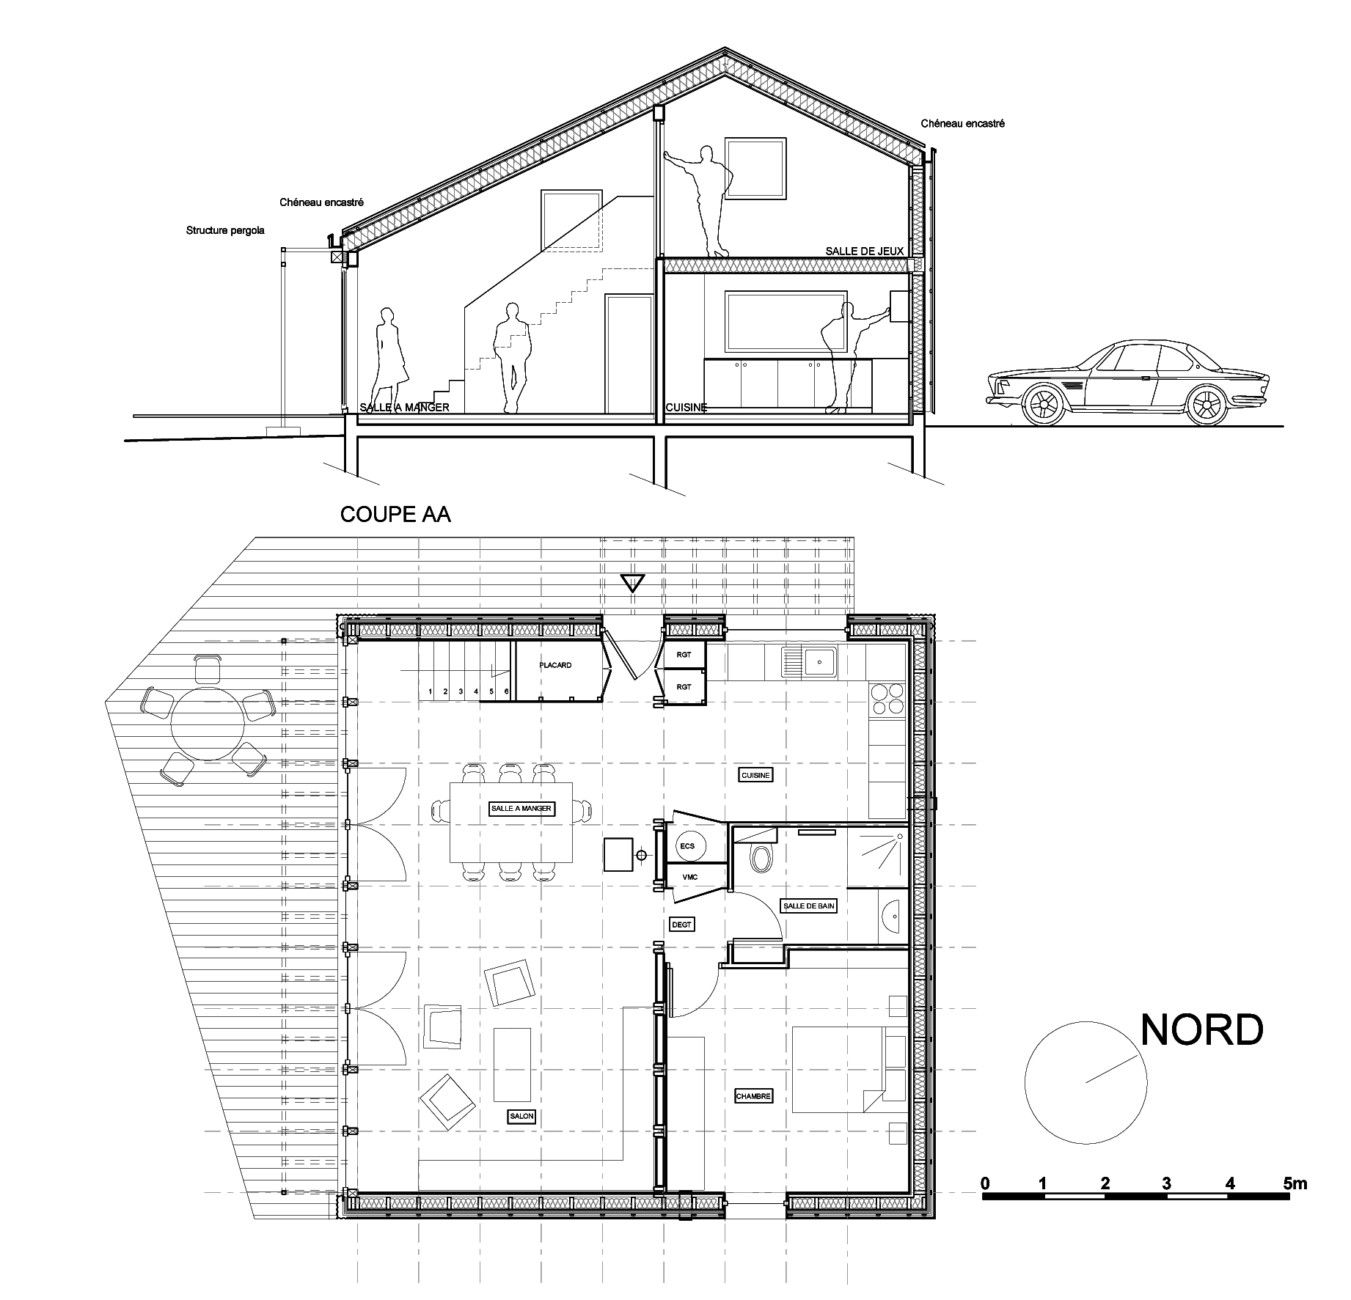 Design For A Low Cost Home By Studiolada As Open Source Download Stylepark Mini House Plans Small House Plans Tiny House Plans